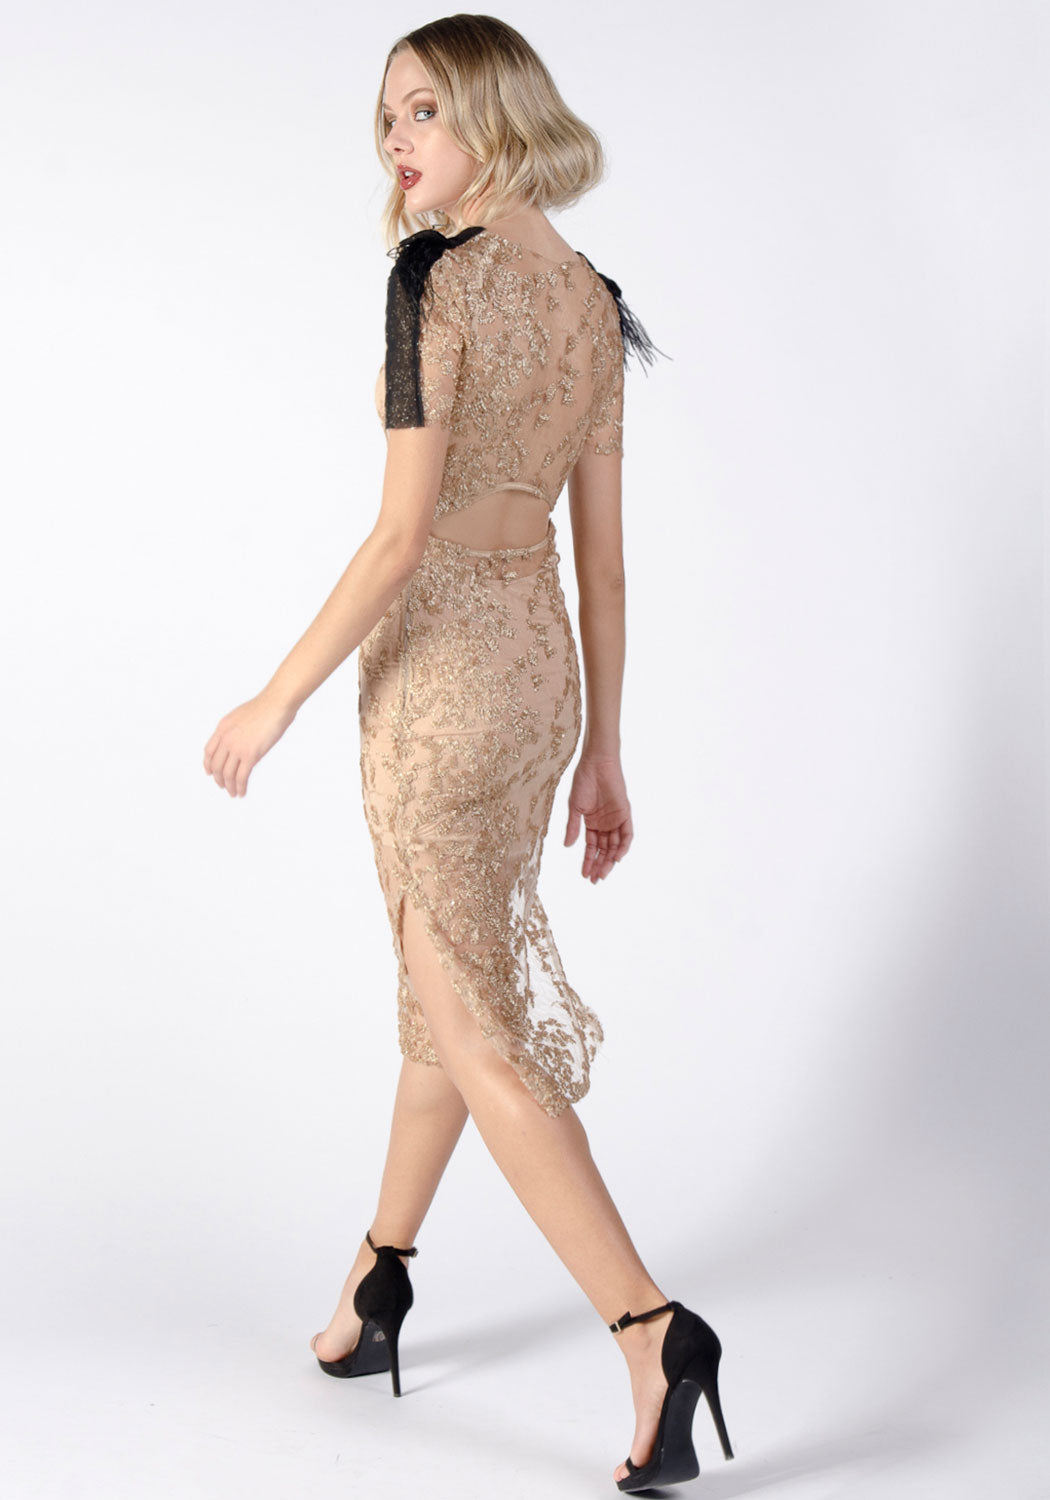 BACALL Lace Sequin Cocktail Dress